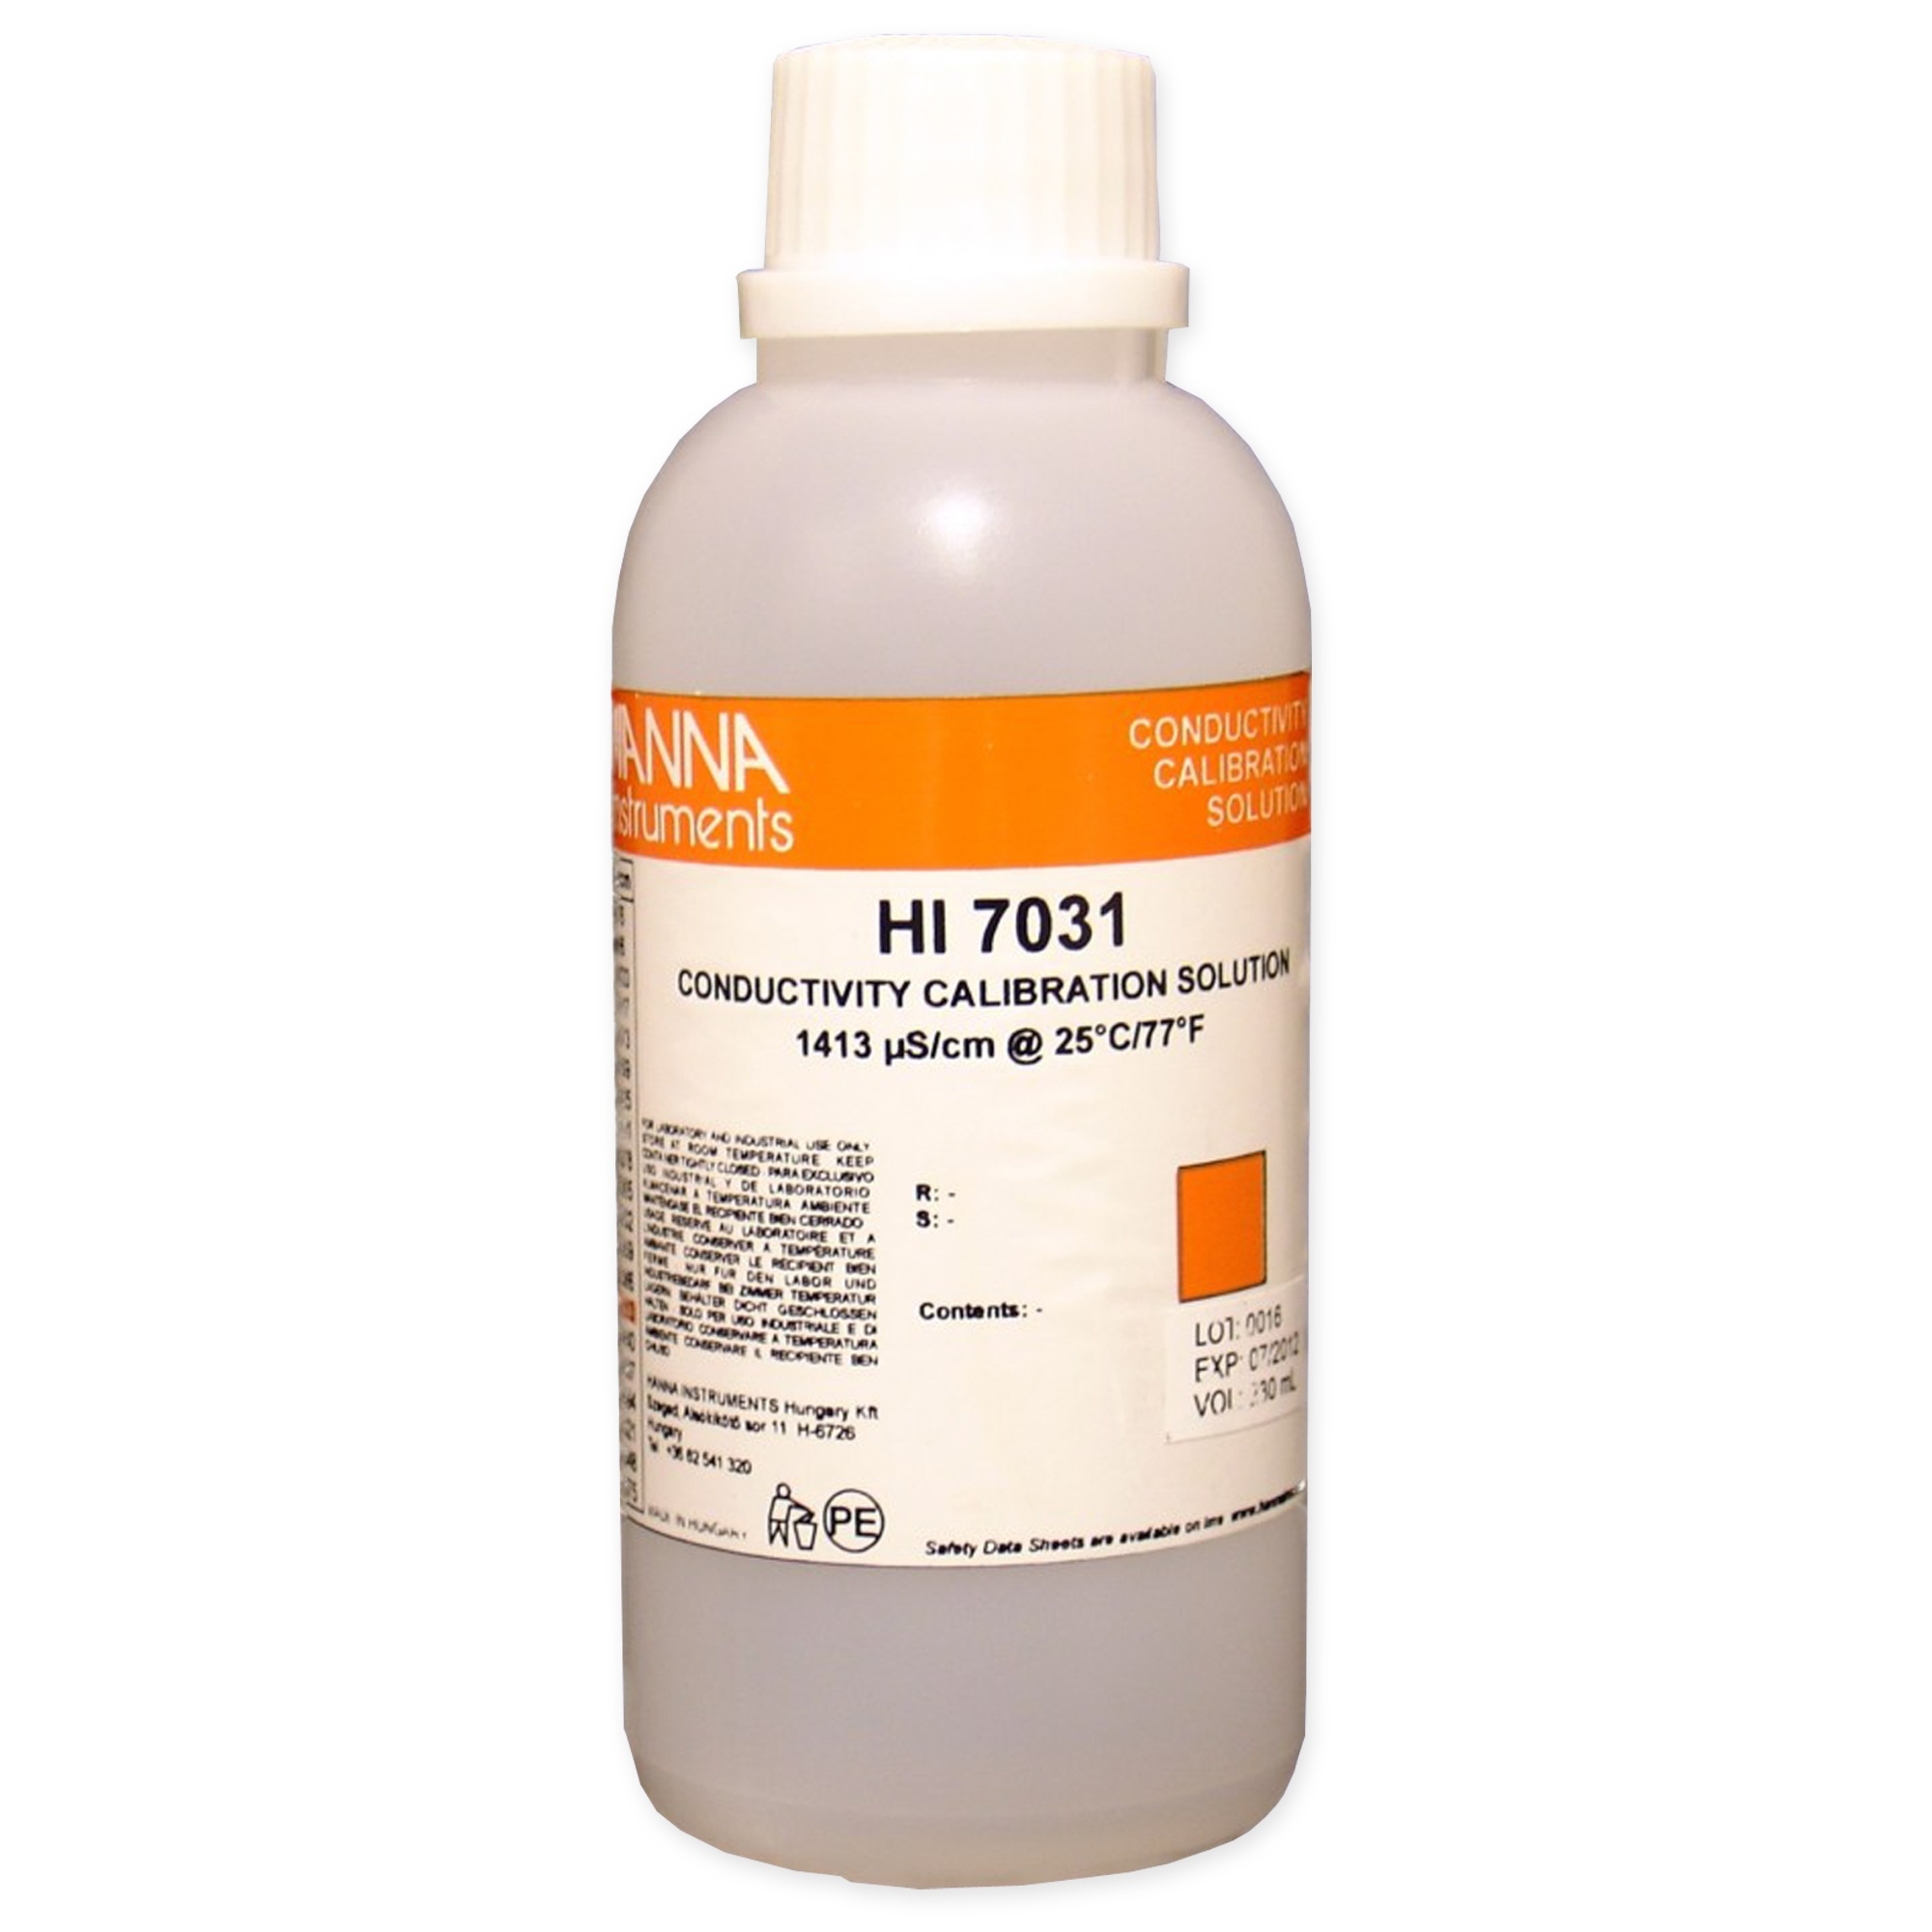 Conductivity calibration solution 1413 μS/cm Image